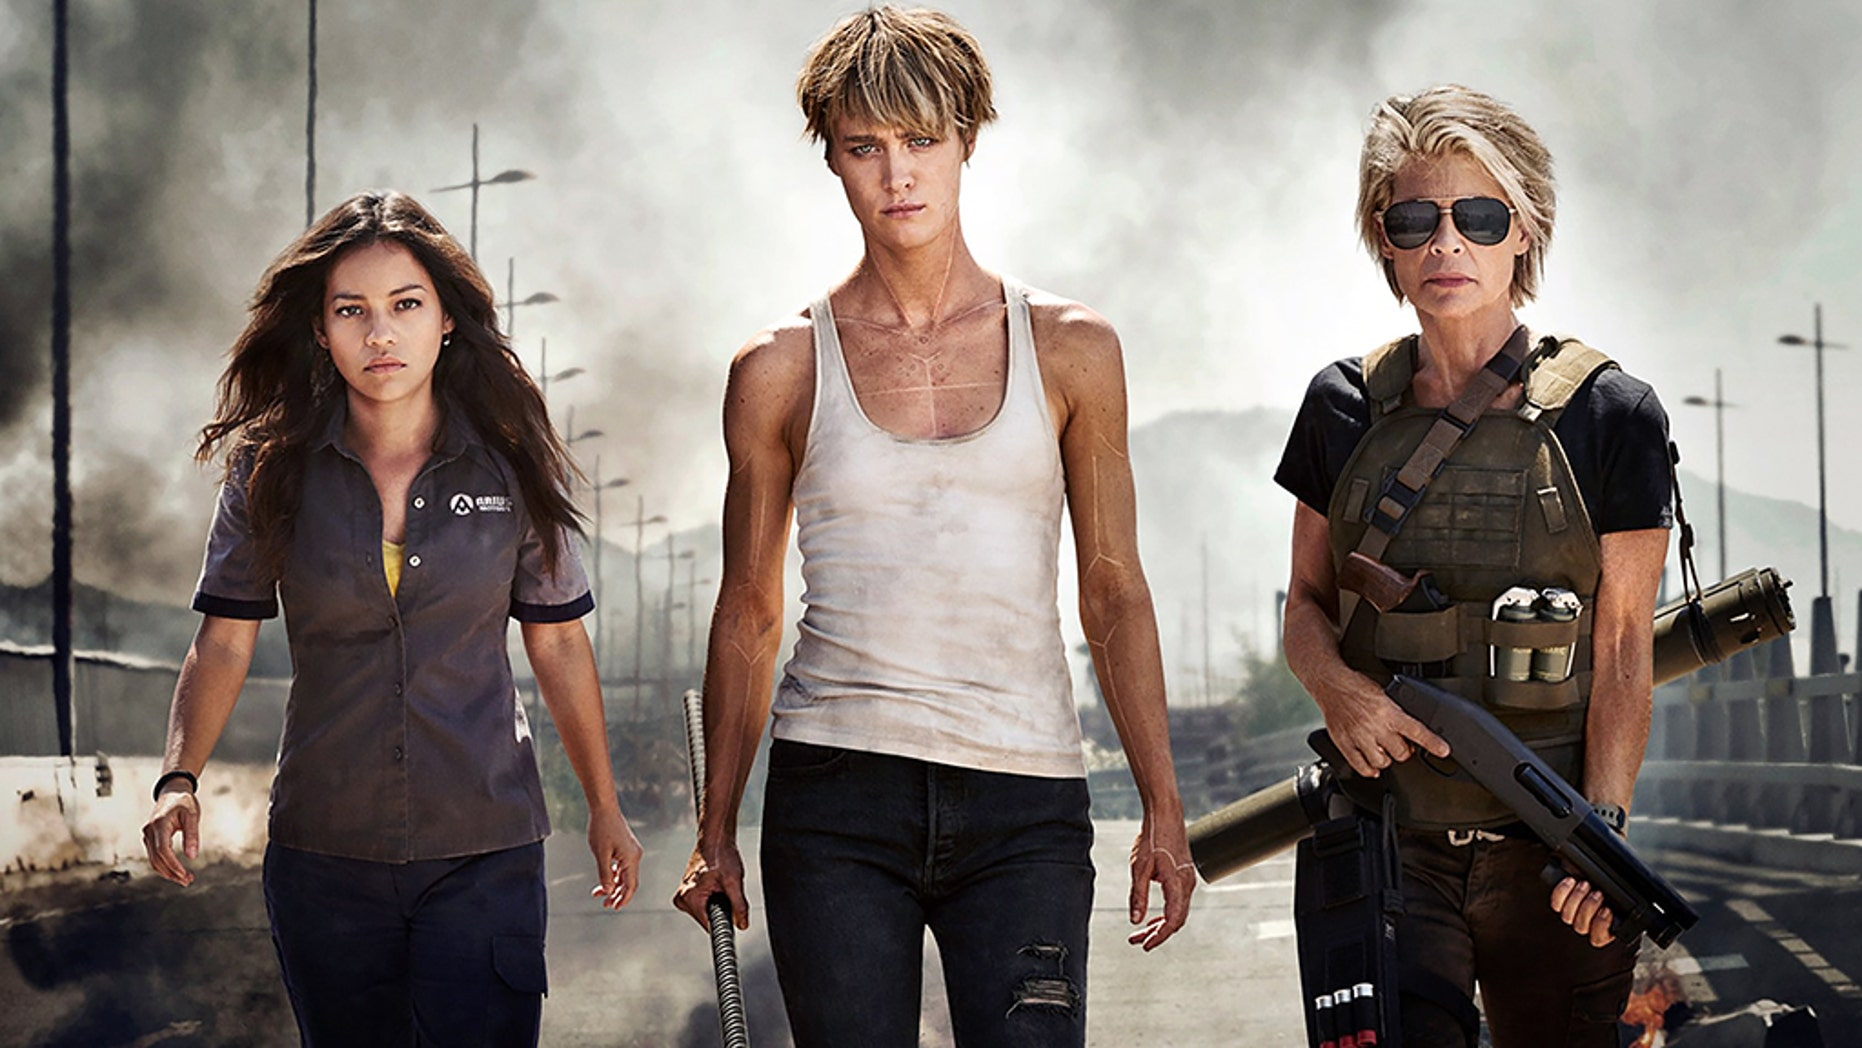 """Paramount released the first official image of the new """"Terminator"""" movie on Wednesday."""